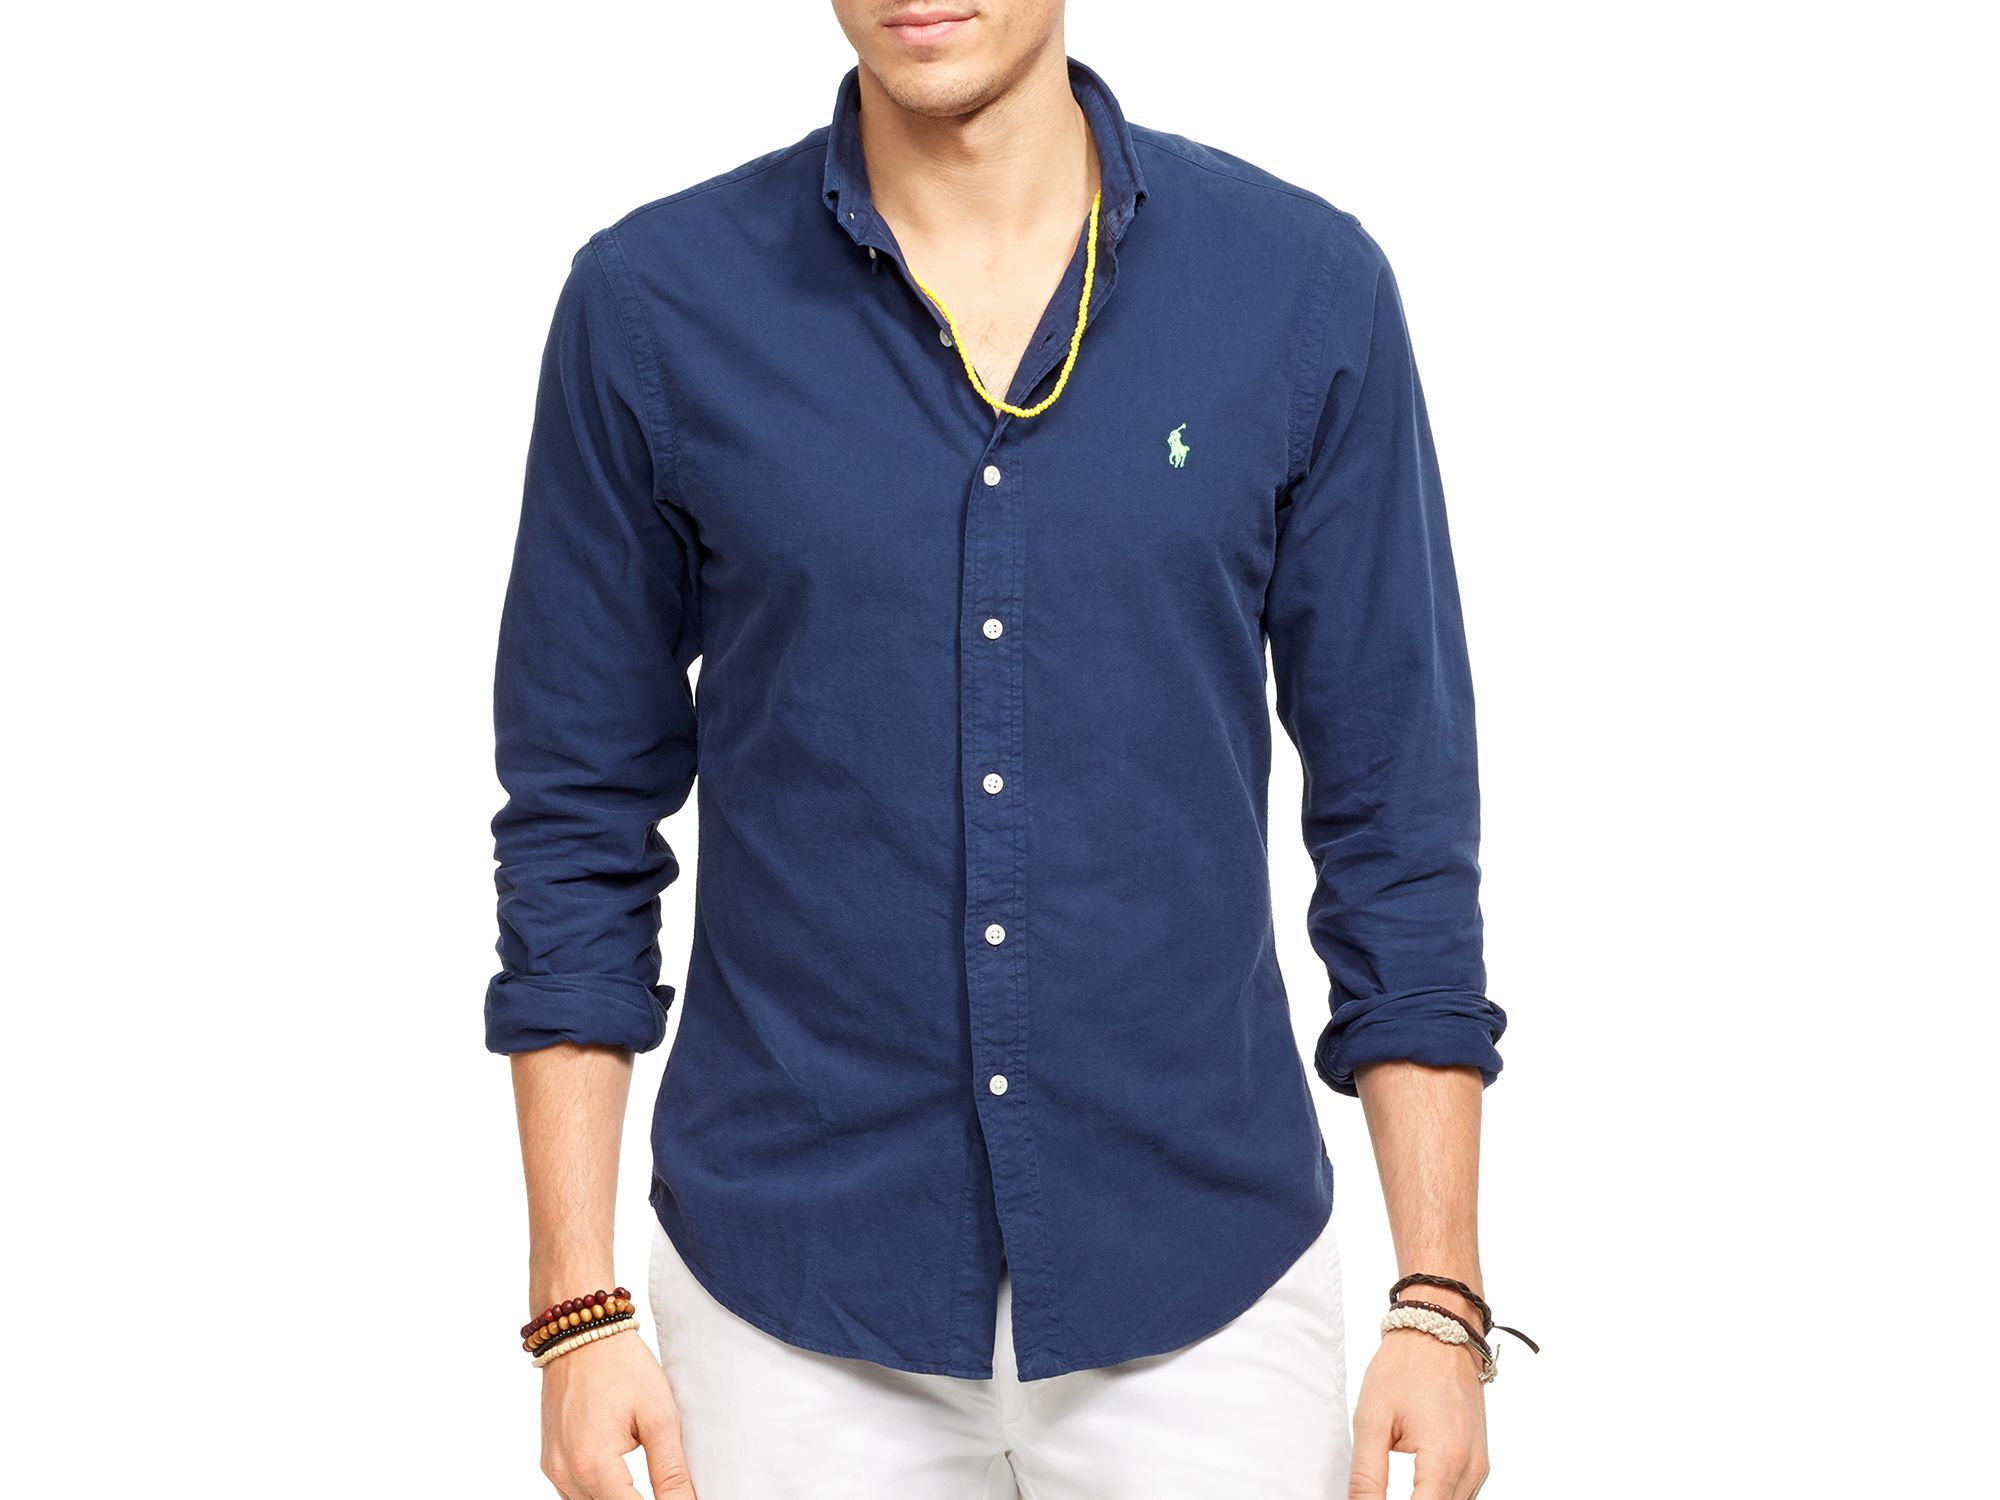 db594e68ba967 Lyst - Polo Ralph Lauren Oxford Shirt - Slim Fit in Blue for Men